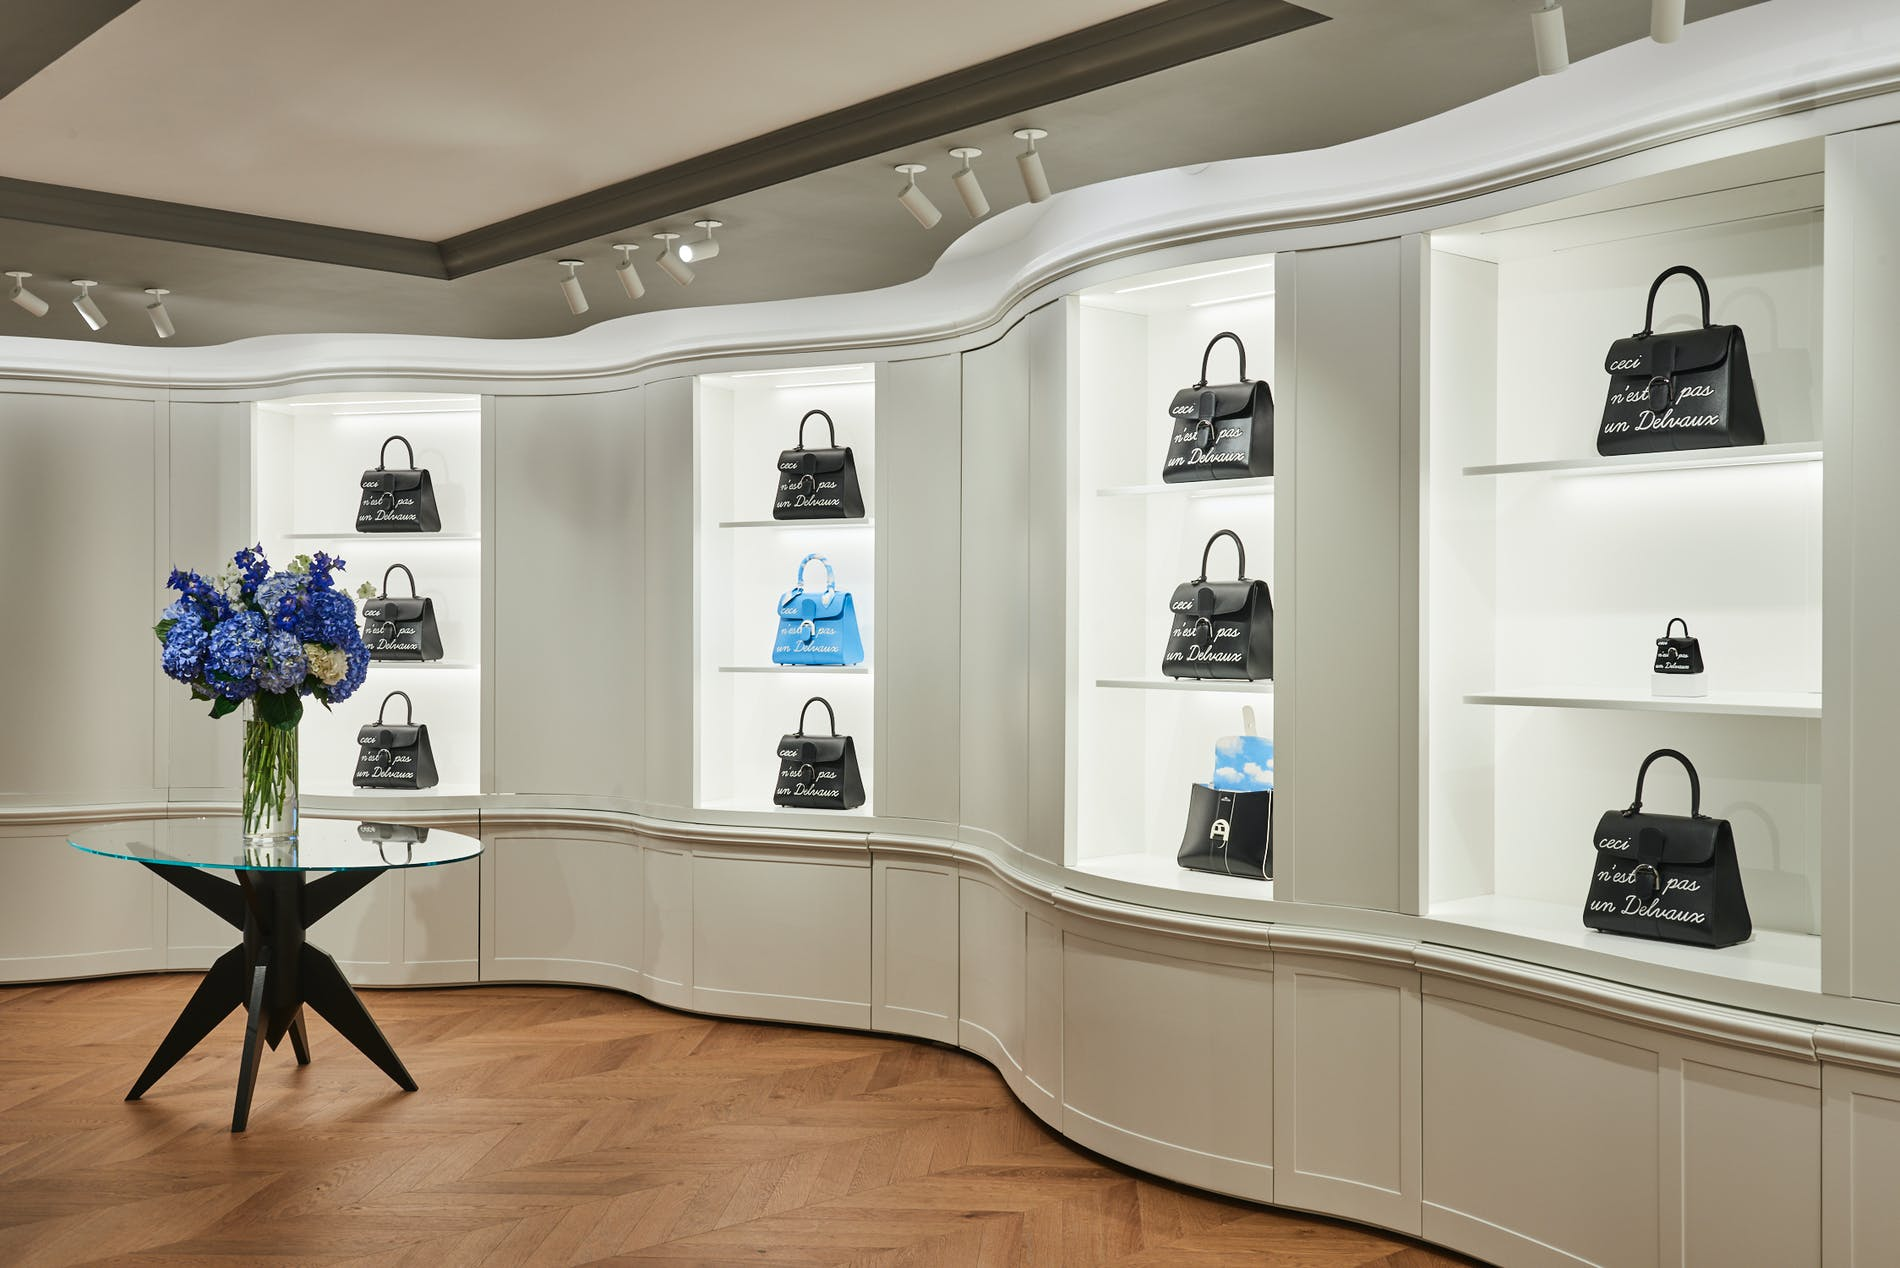 1558101046233448 delvaux magritte foundation exhibition nyc 2